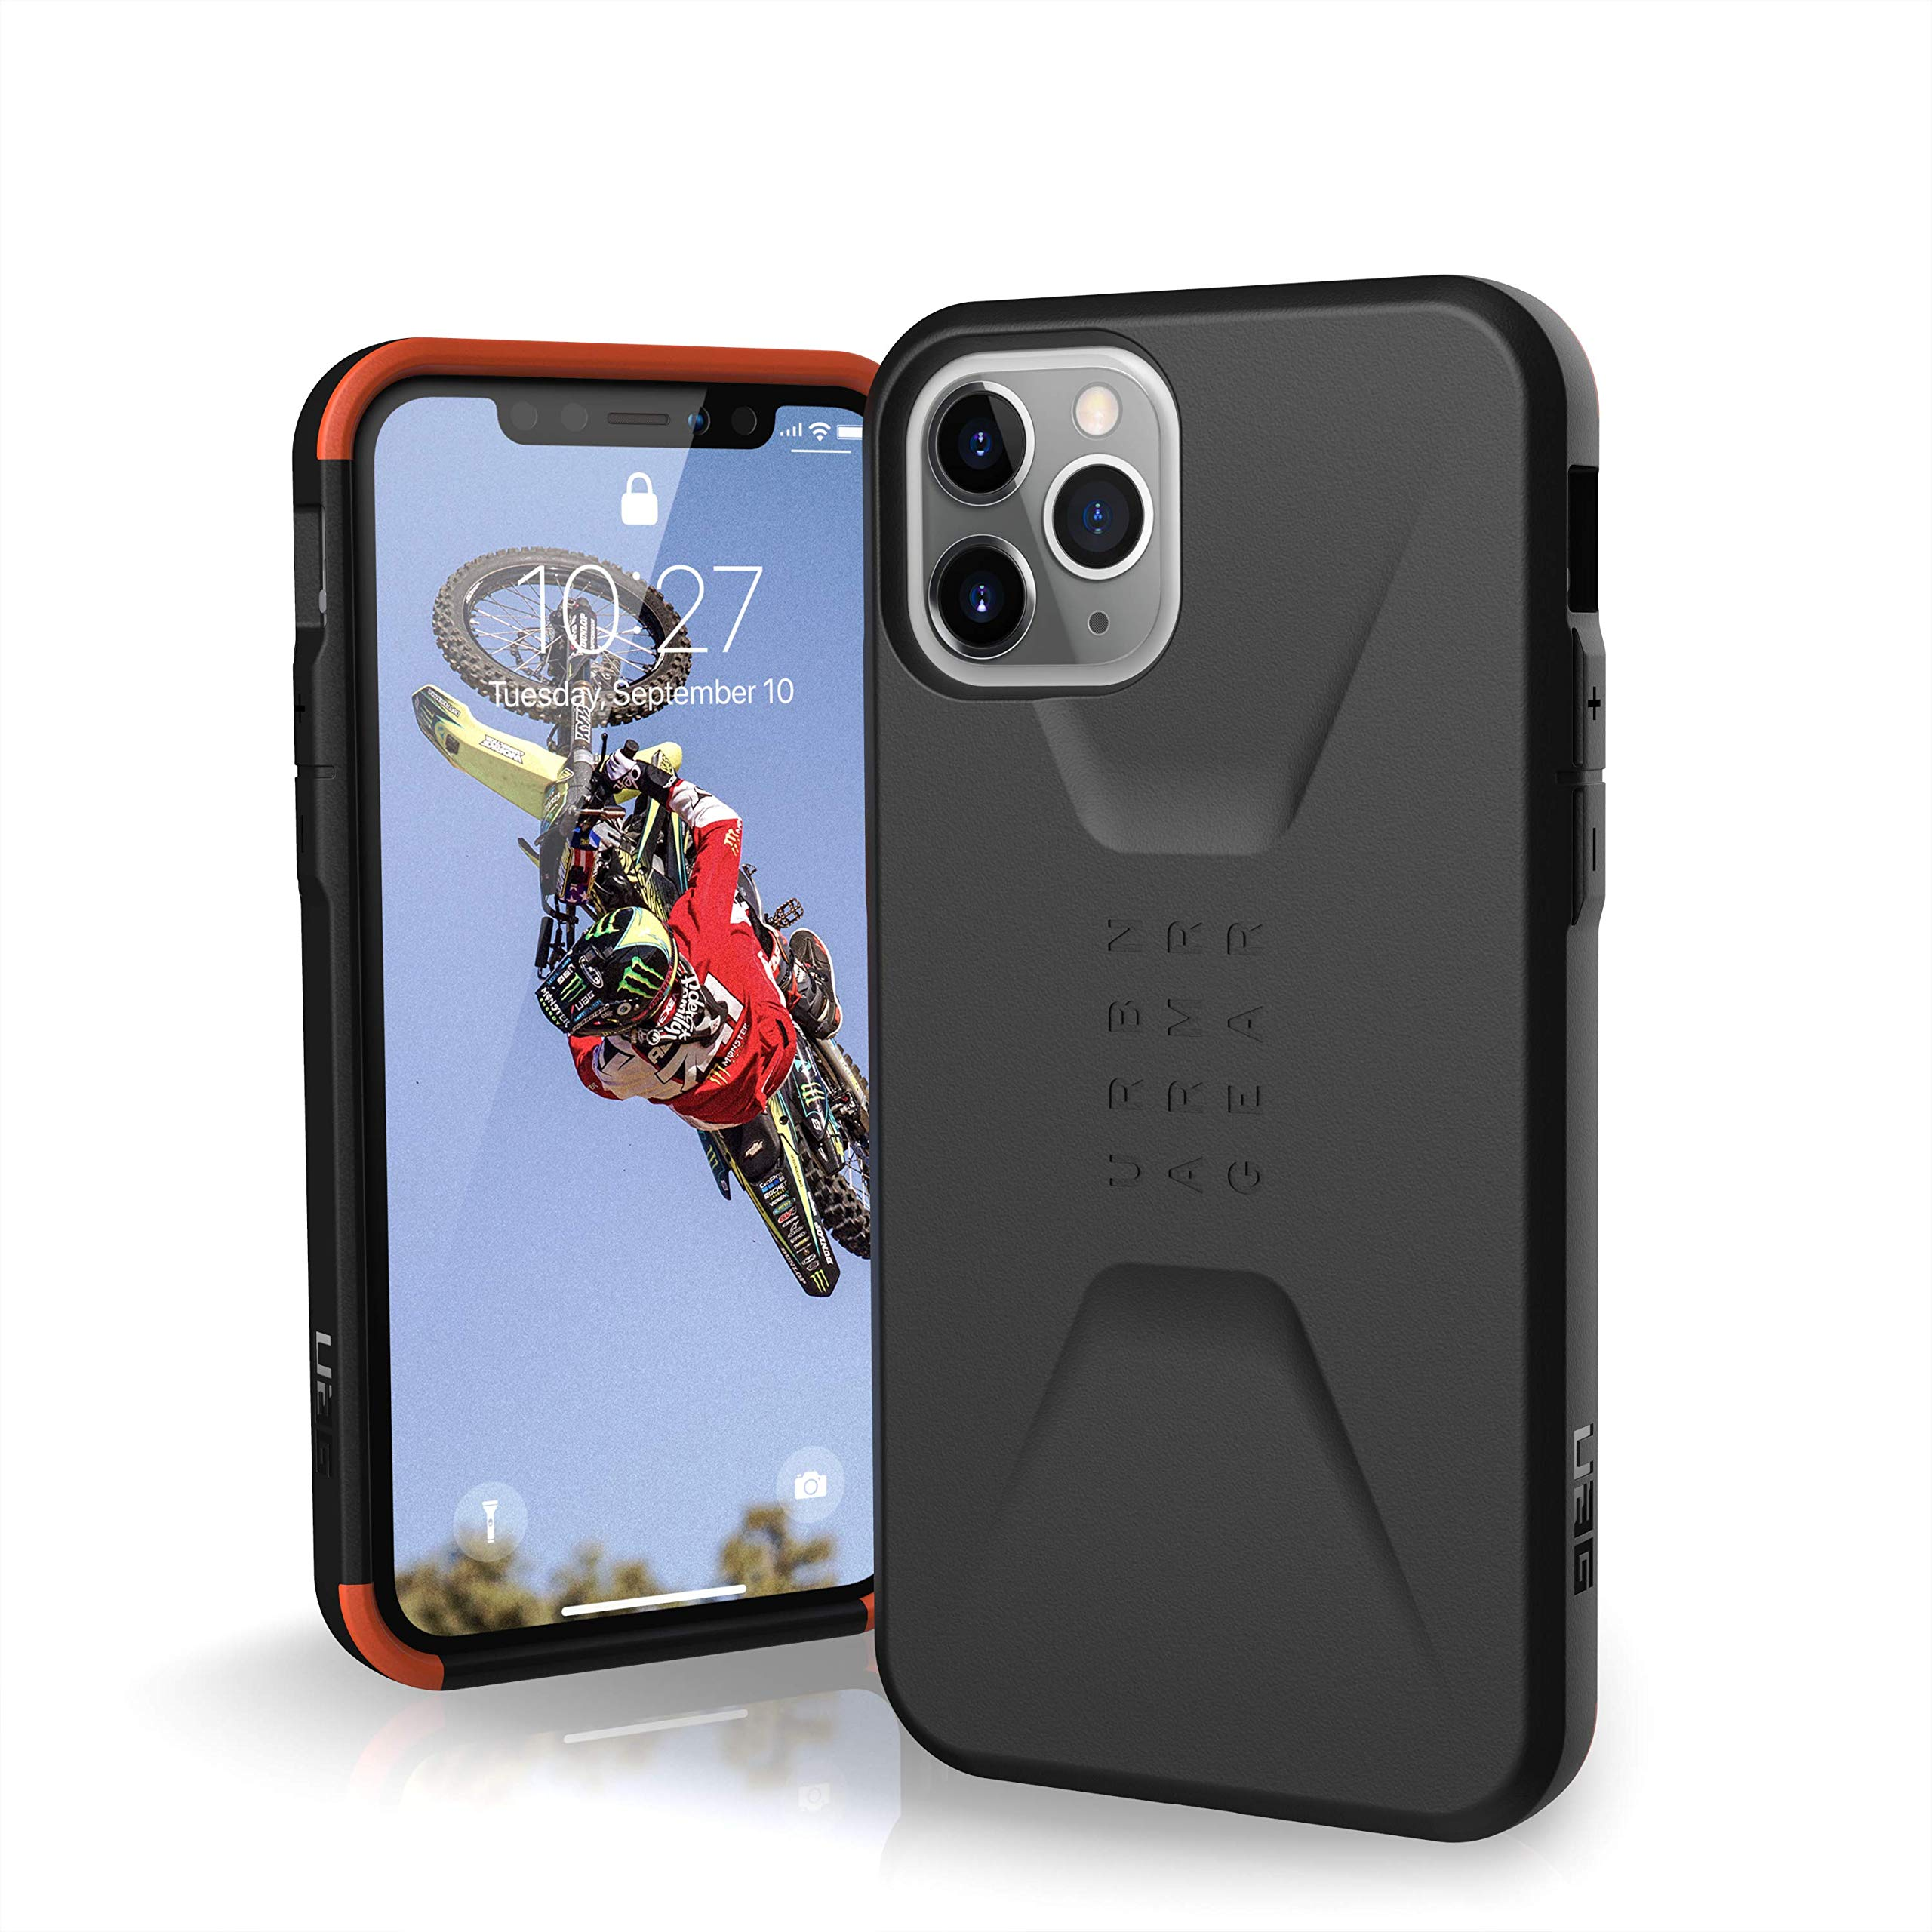 URBAN ARMOR GEAR UAG Designed for iPhone 11 Pro [5.8-inch Screen] Civilian Feather-Light Rugged [Black] Military Drop Tested iPhone Case